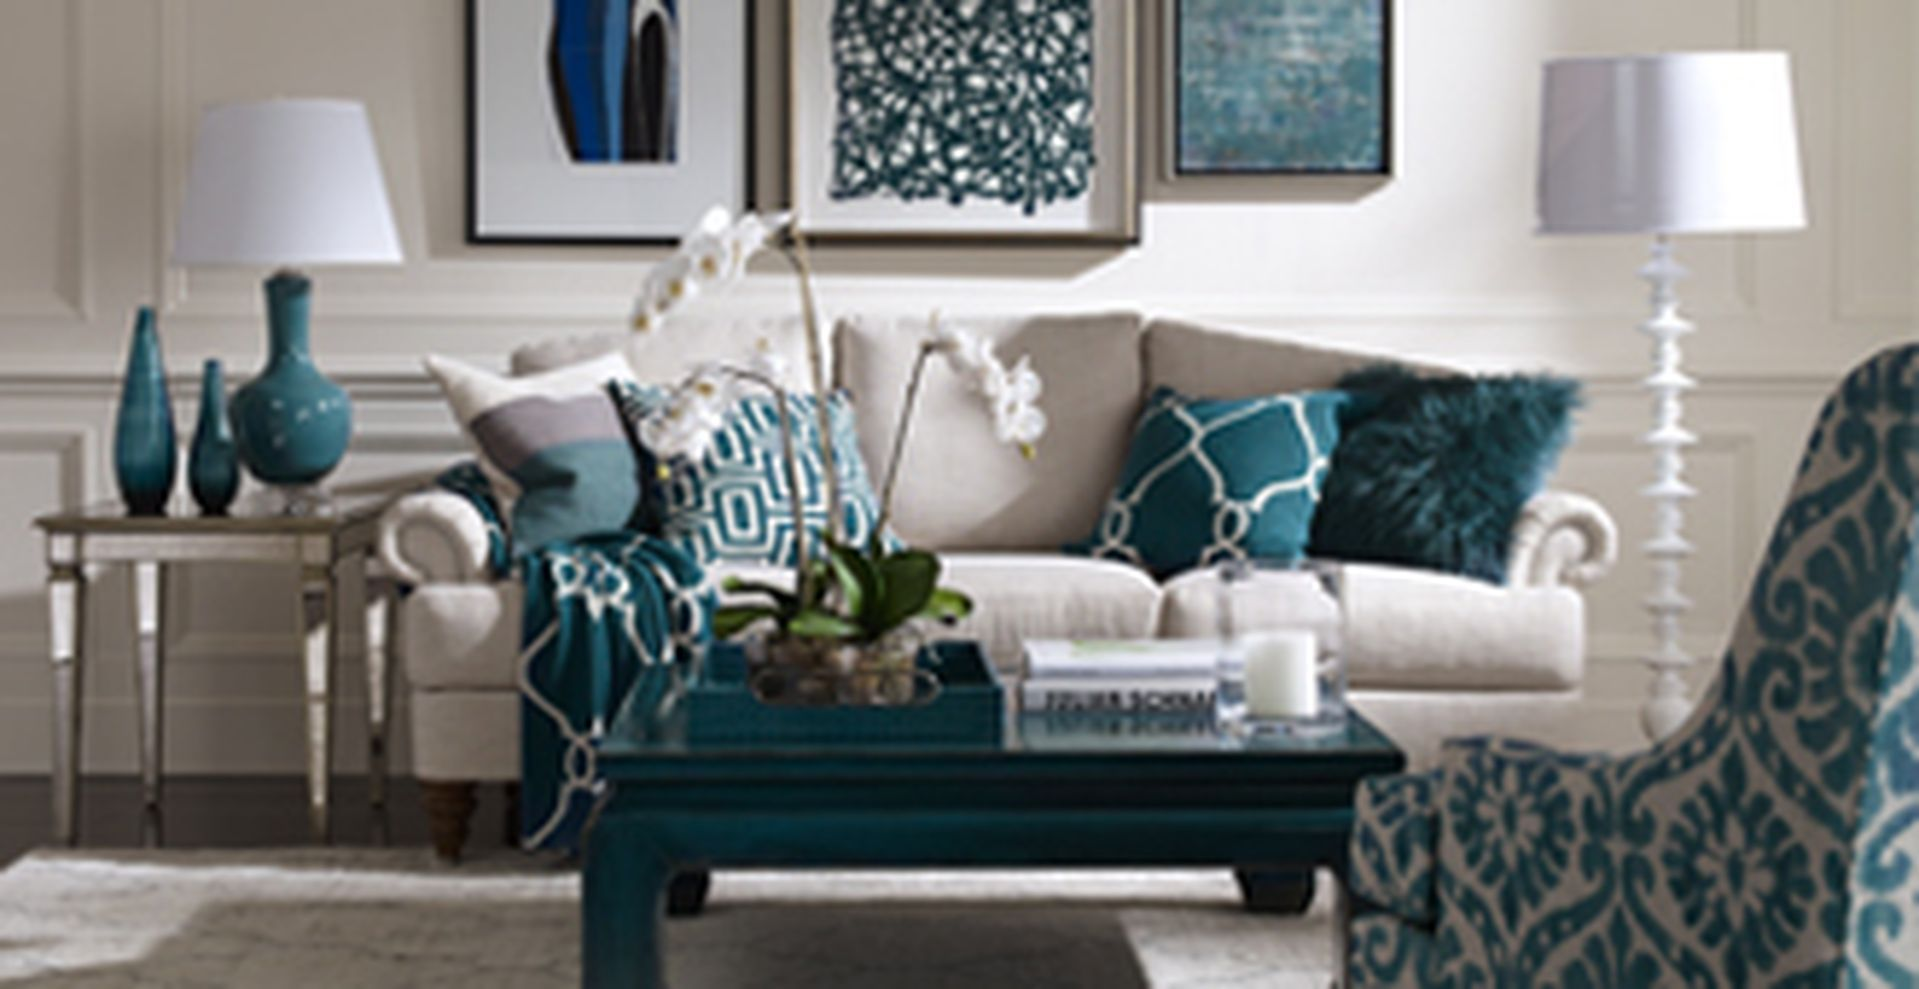 42 Incredible Teal And Silver Living Room Design Ideas Roundecor Silver Living Room Living Room Designs Easy Room Decor